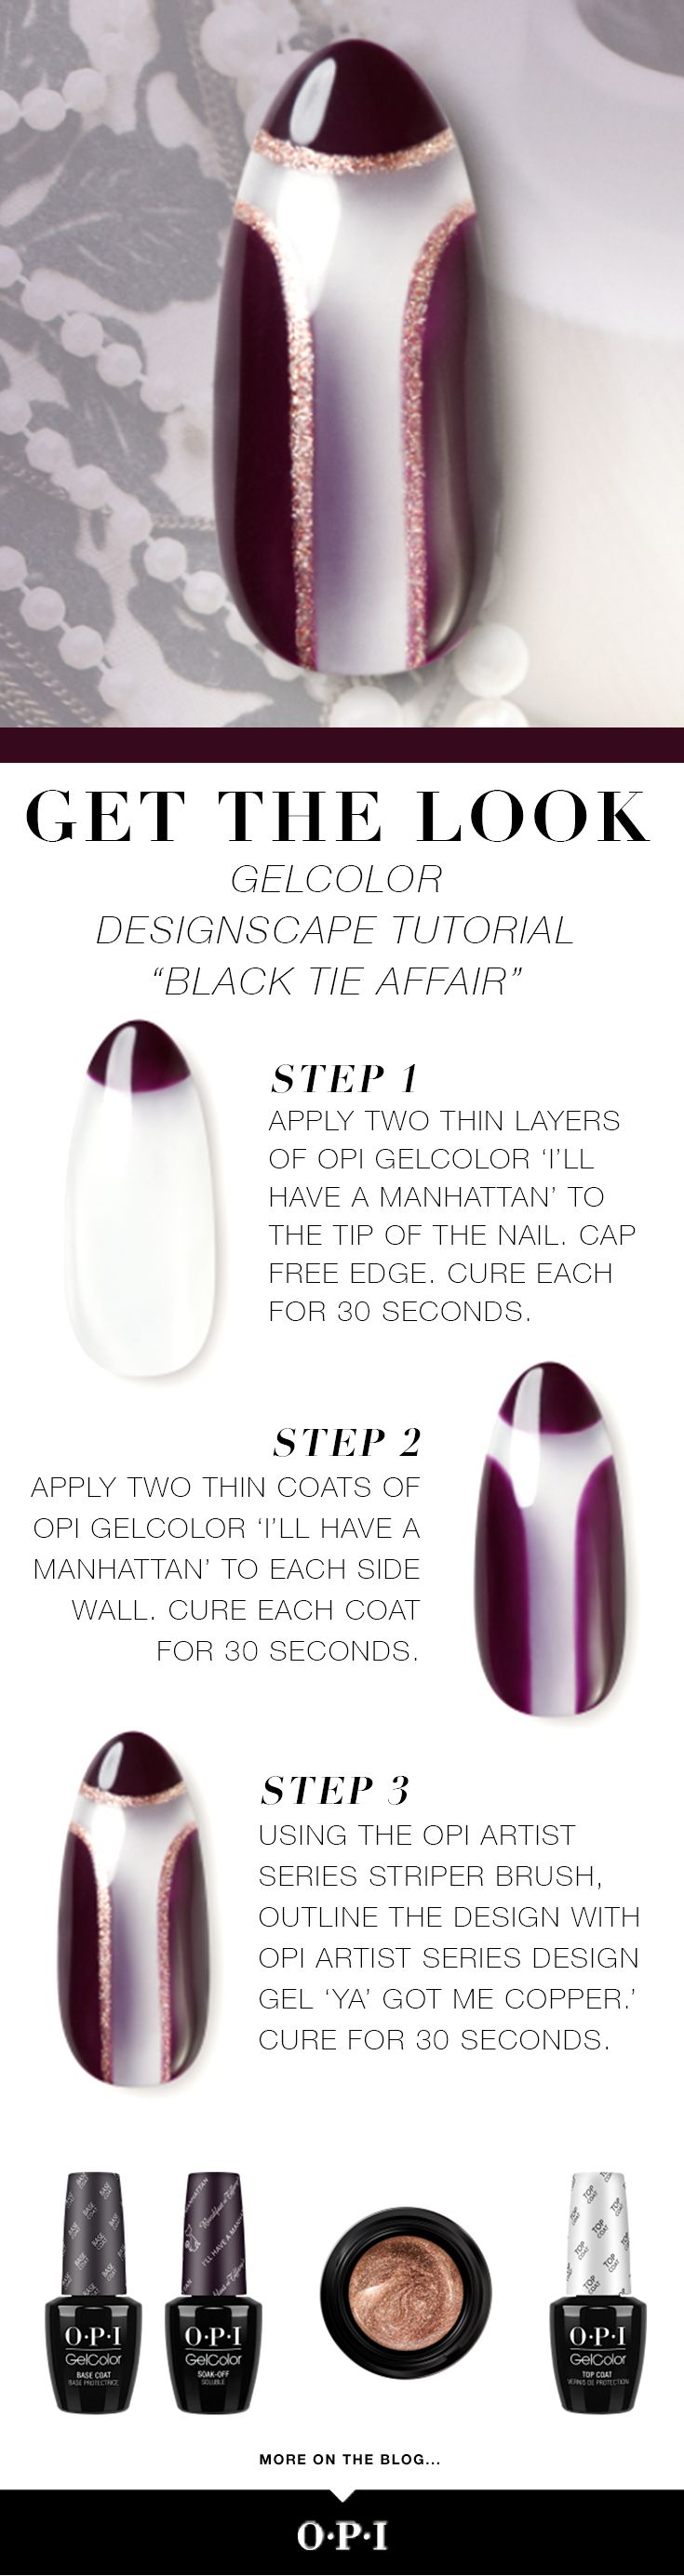 """OPI presents Breakfast at Tiffany's inspired nail art. Try our """"Black Tie Affair"""" look using the new OPI holiday collection inspired by the iconic film. OPI is delighted to celebrate Breakfast at Tiffany's with these must-have shades now available in OPI GelColor, Infinite Shine and Nail Lacquer. Head to the salon to try this classic #OPIBreakfastAtTiffanys look."""